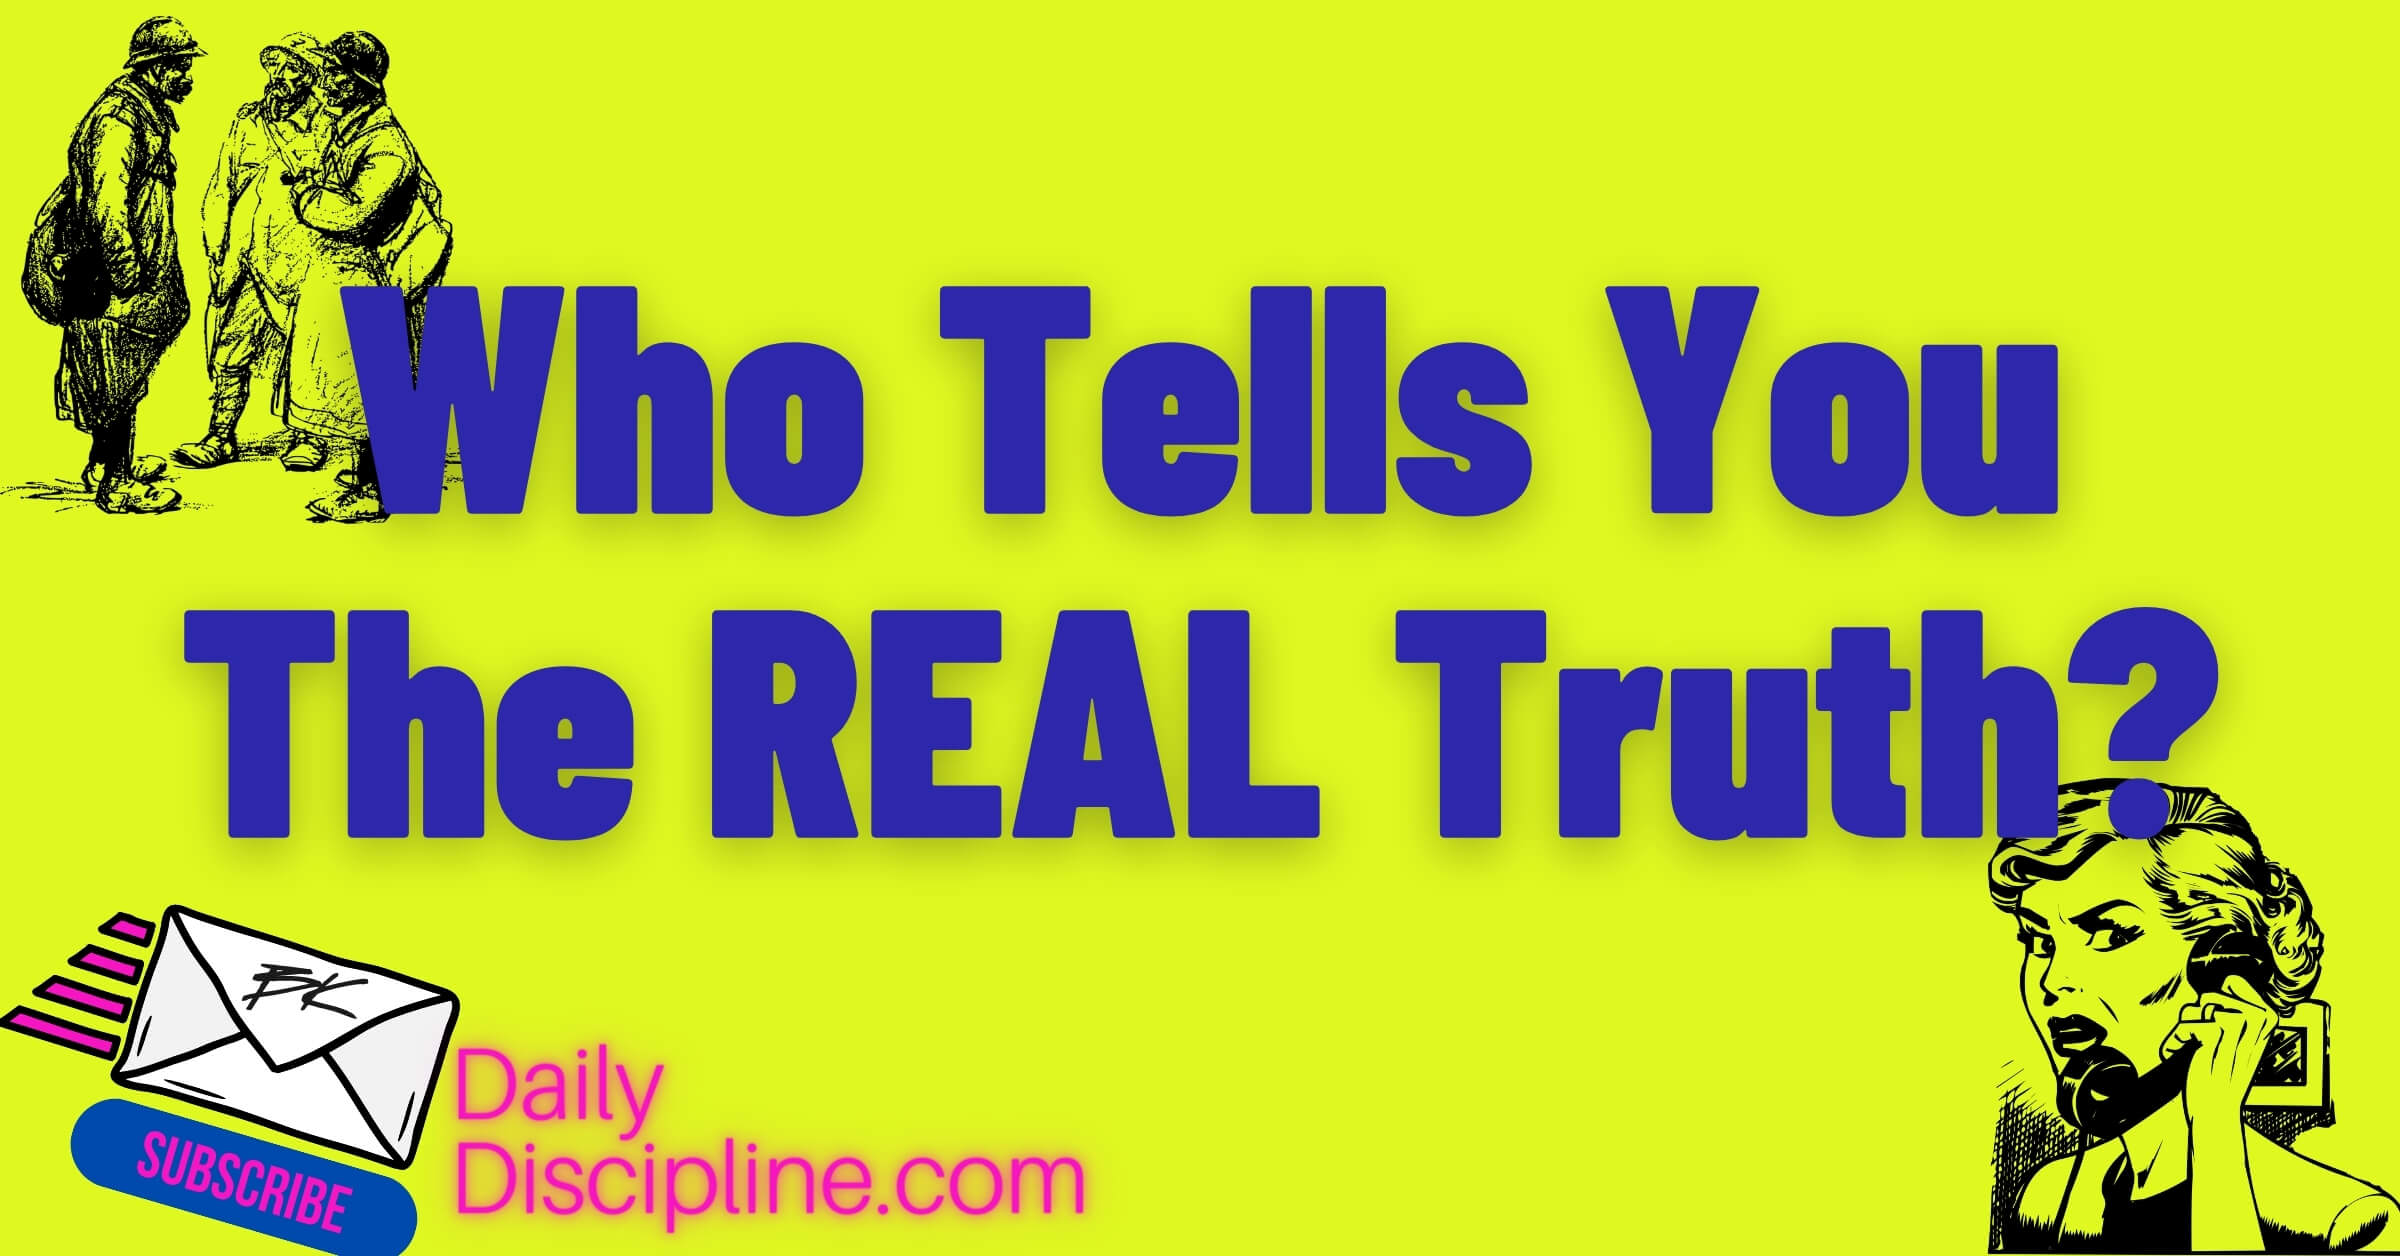 Who Tells You The REAL Truth?